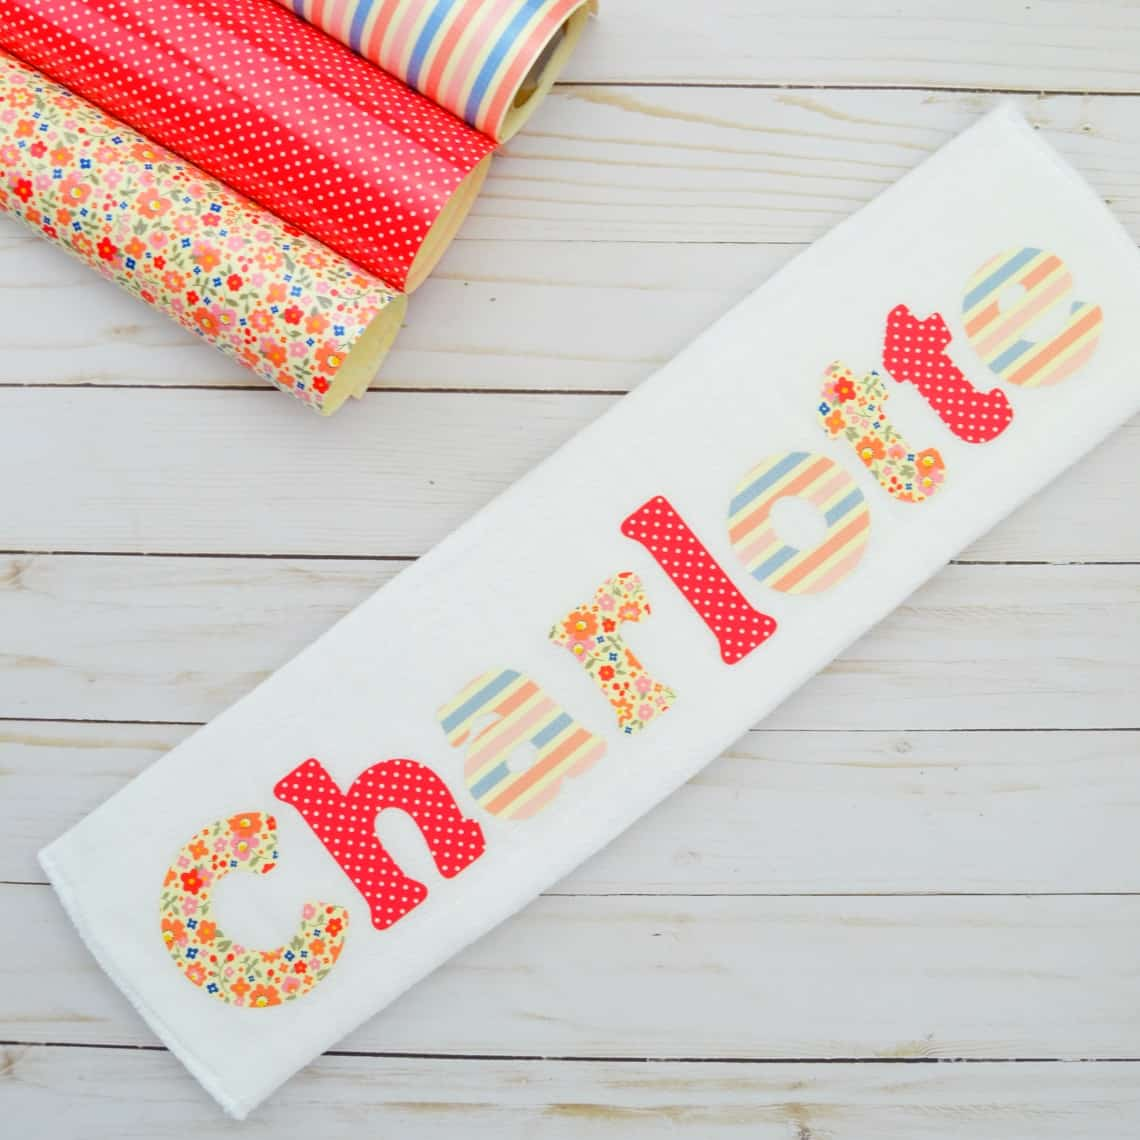 how to make a burp cloth- Follow this tutorial to lean how to make a burp cloth with baby's name on it #diyburpcloth #cricumakerprojects